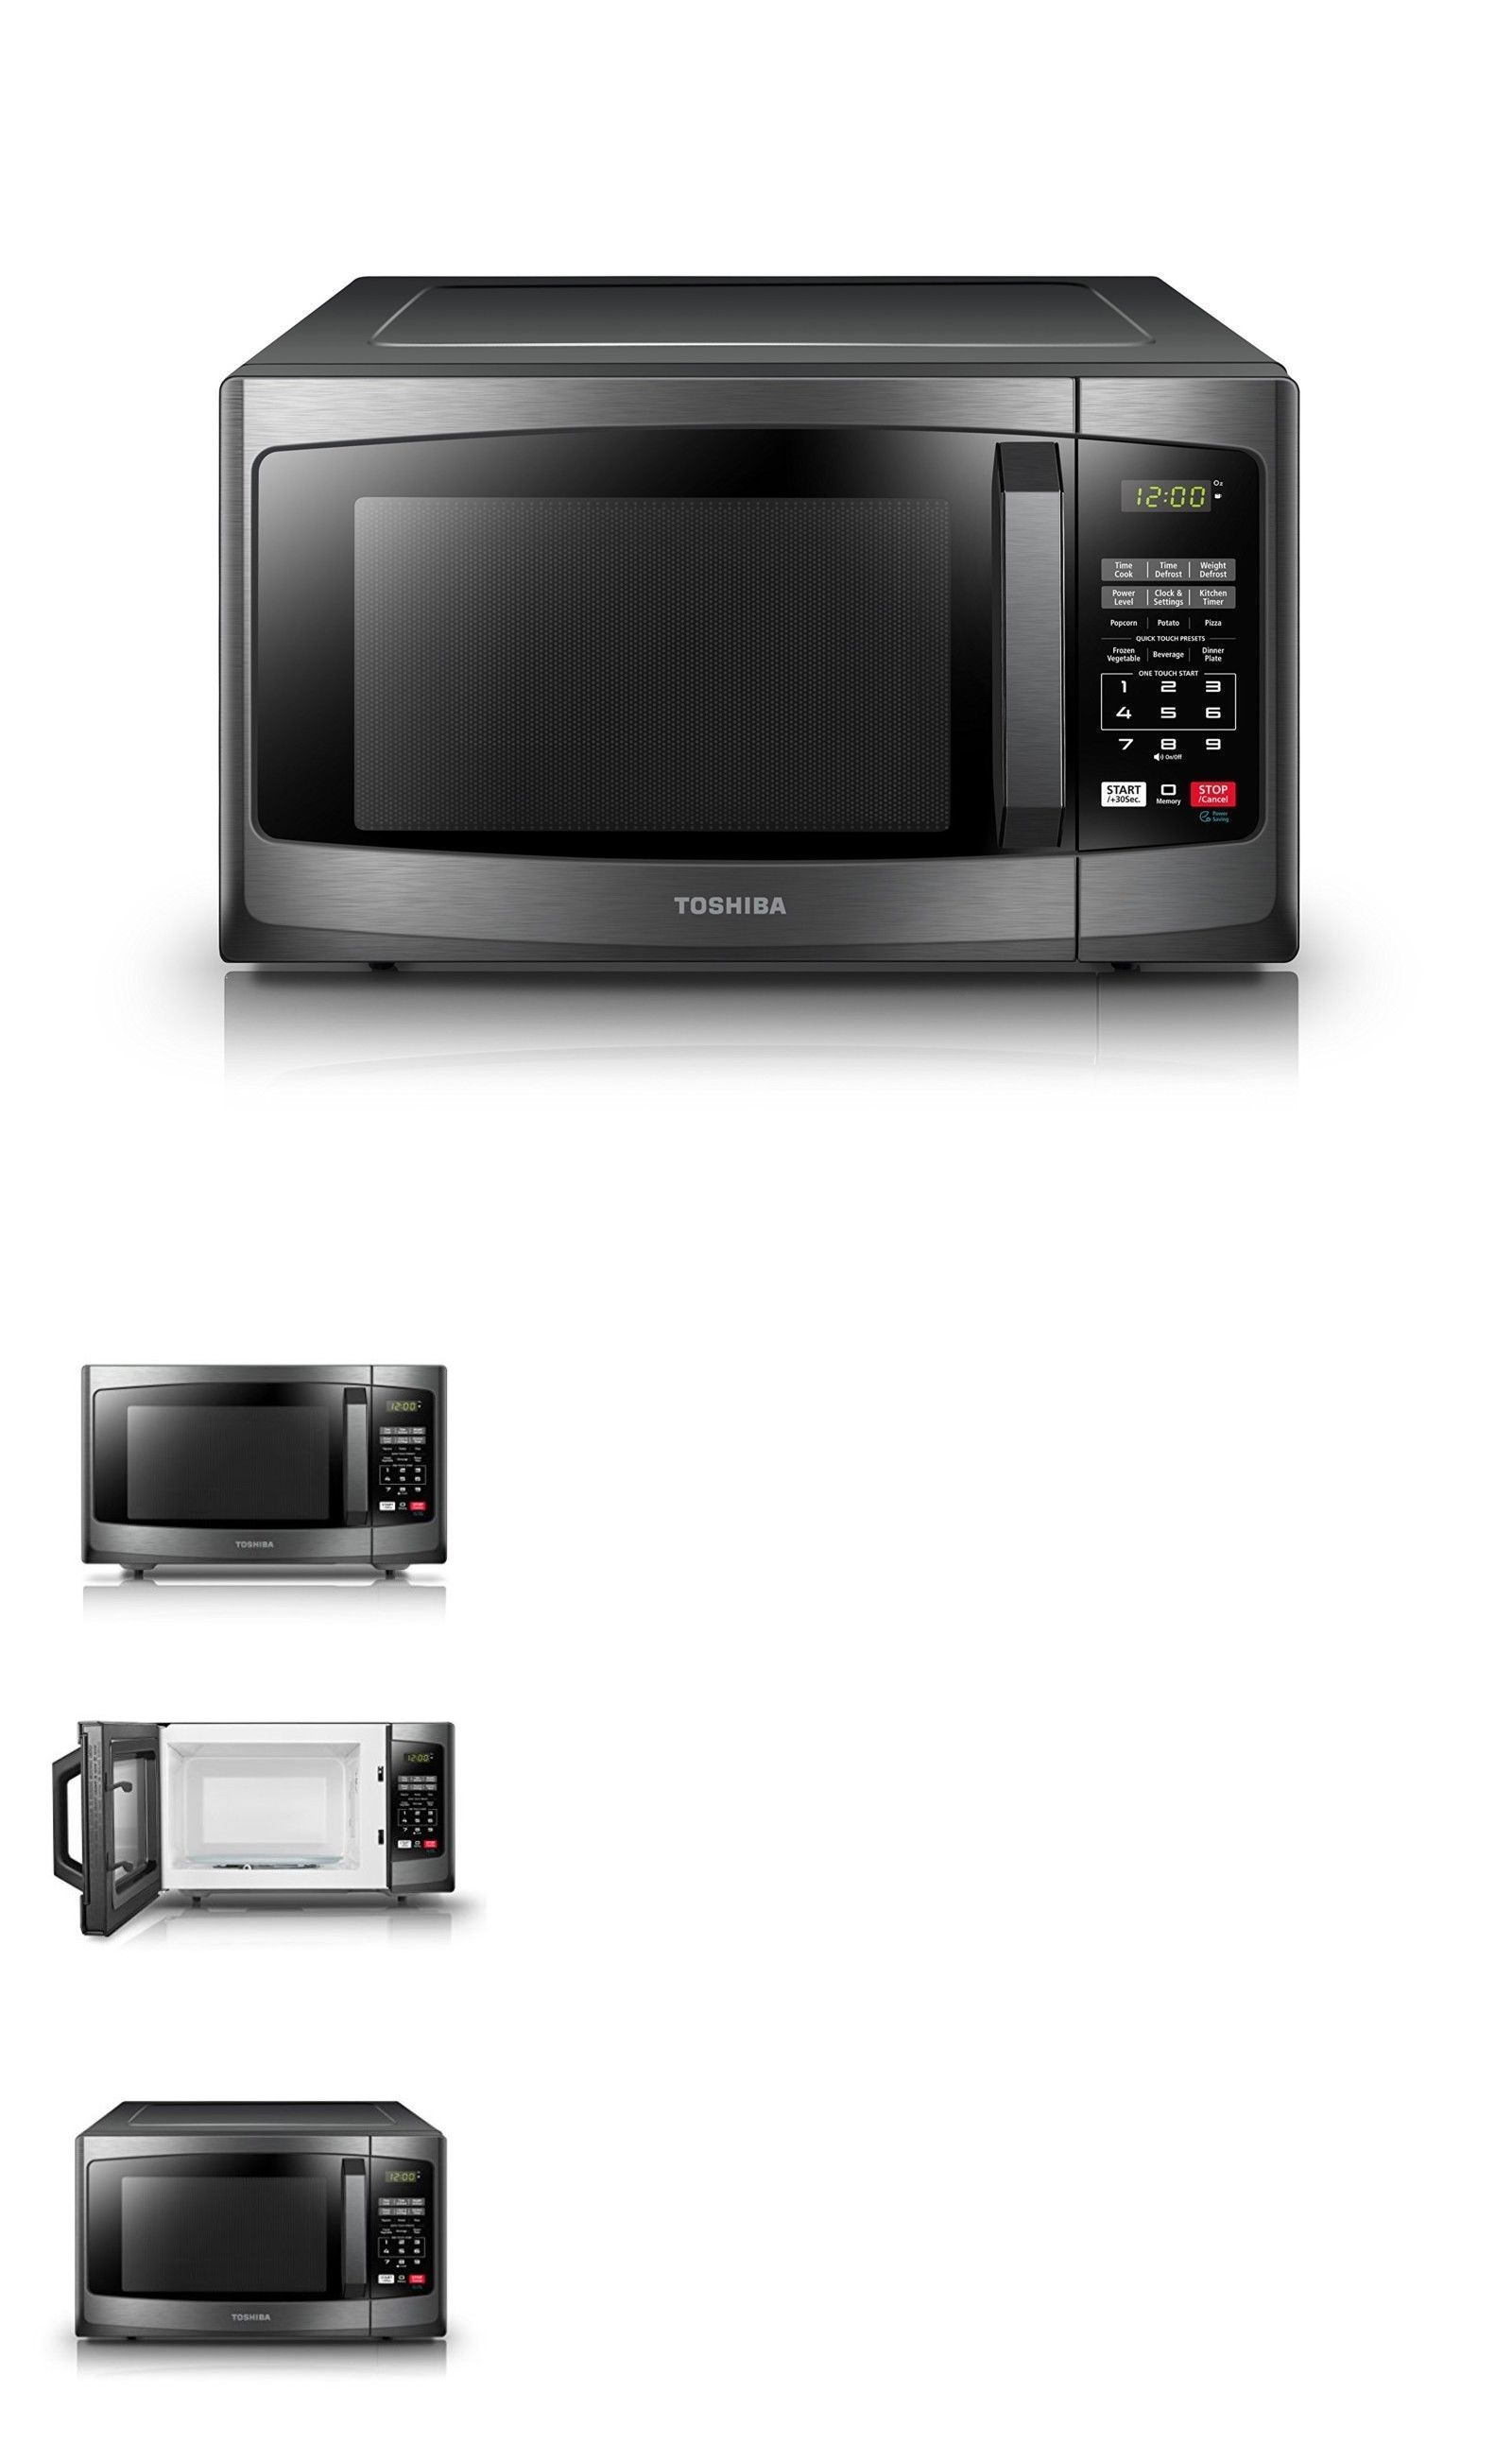 Microwave Ovens 150140 Toshiba Em925a5a Bs Microwave Oven With